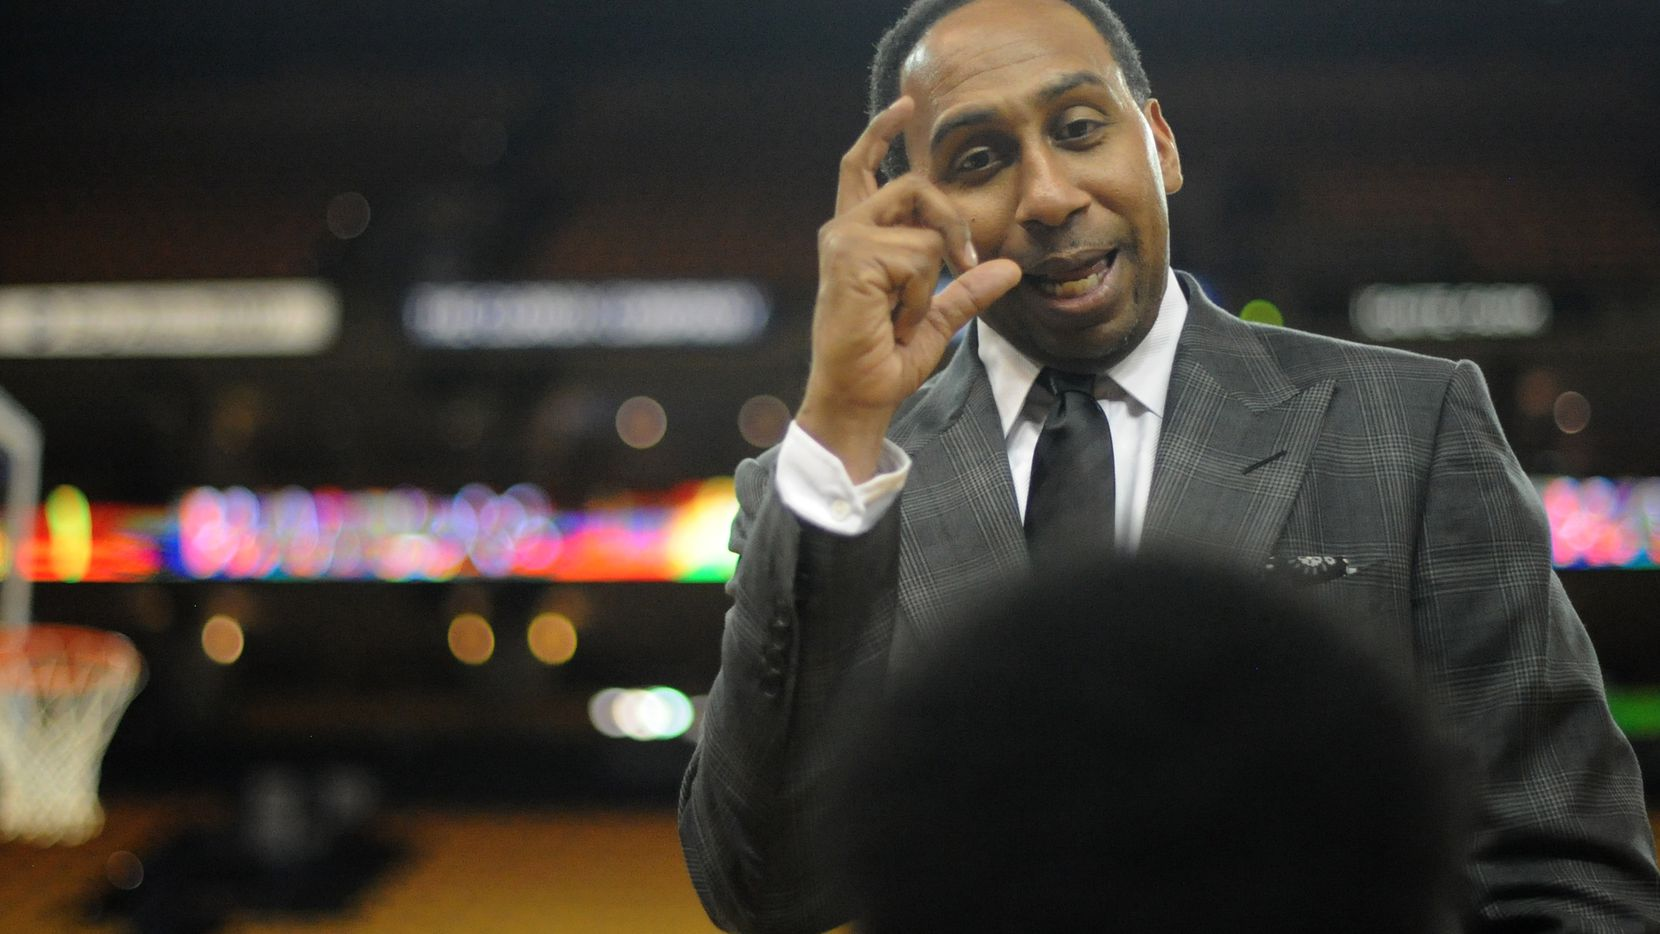 TV sports personality Stephen A. Smith speaks with youth from the Hidden Genius Project prior to Game Seven of the Western Conference Finals between the Golden State Warriors and the Oklahoma City Thunder during the 2016 NBA Playoffs at ORACLE Arena on May 30, 2016 in Oakland, California.